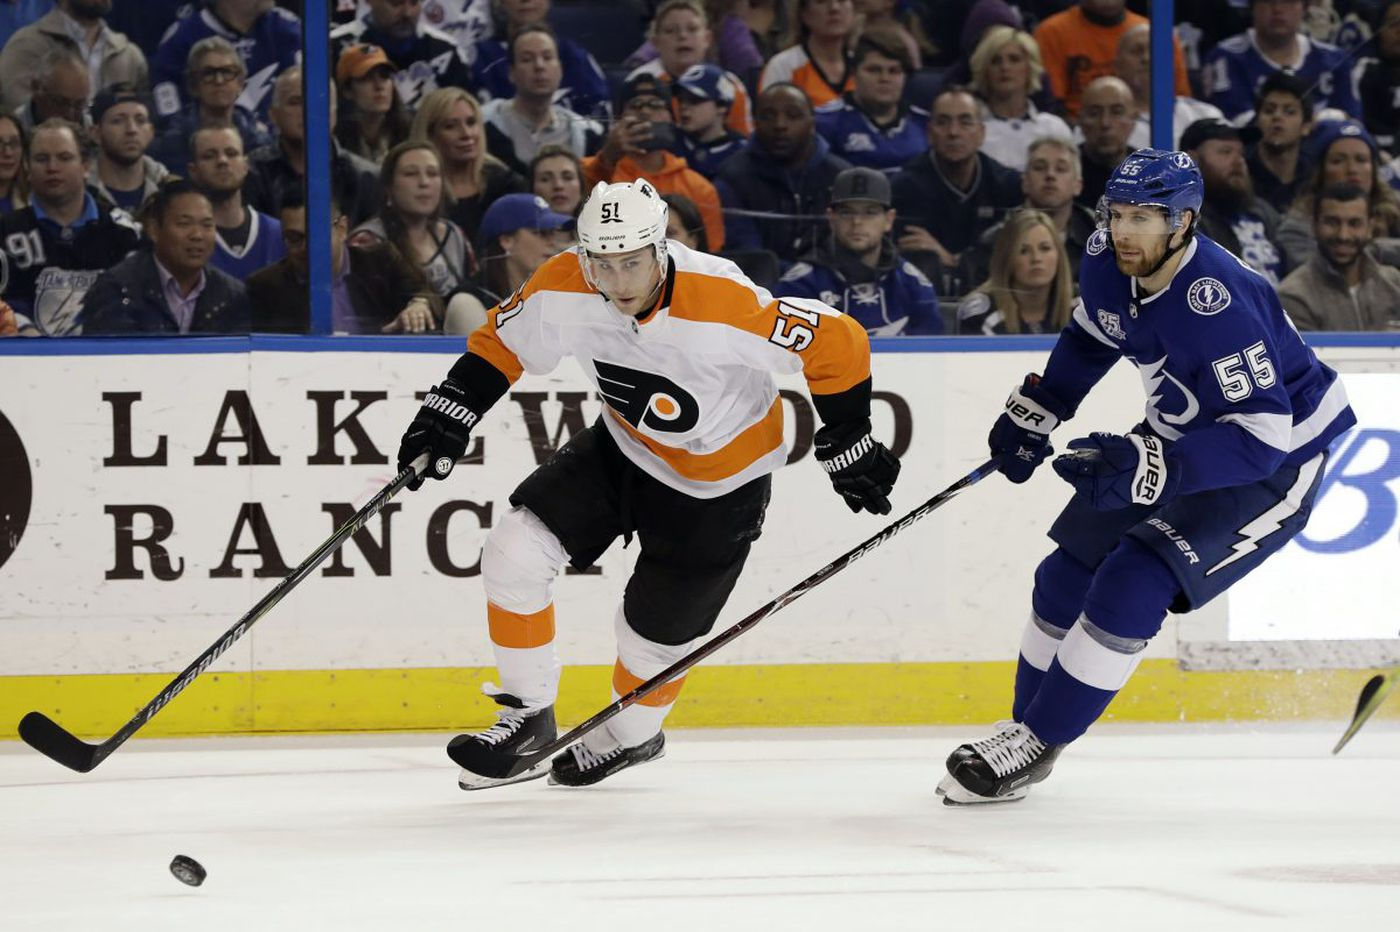 Flyers 5, Lightning 3: Five quick observations